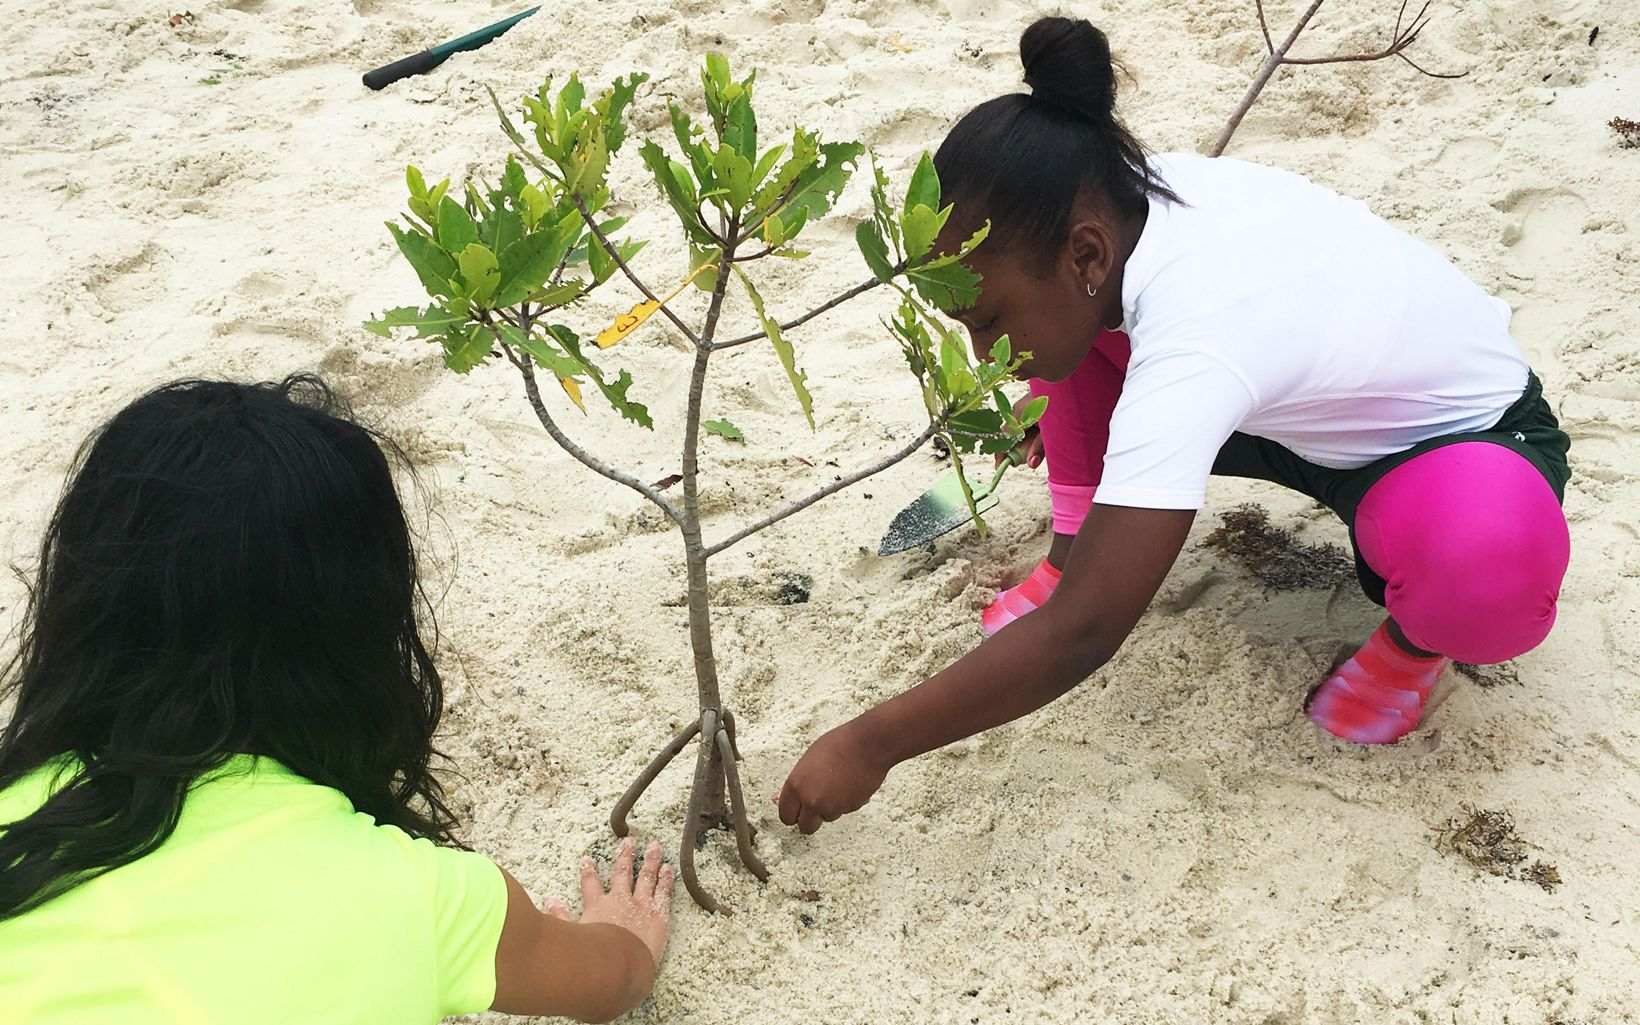 Two school children plant mangroves on the beach at Blowing Rocks Preserve.